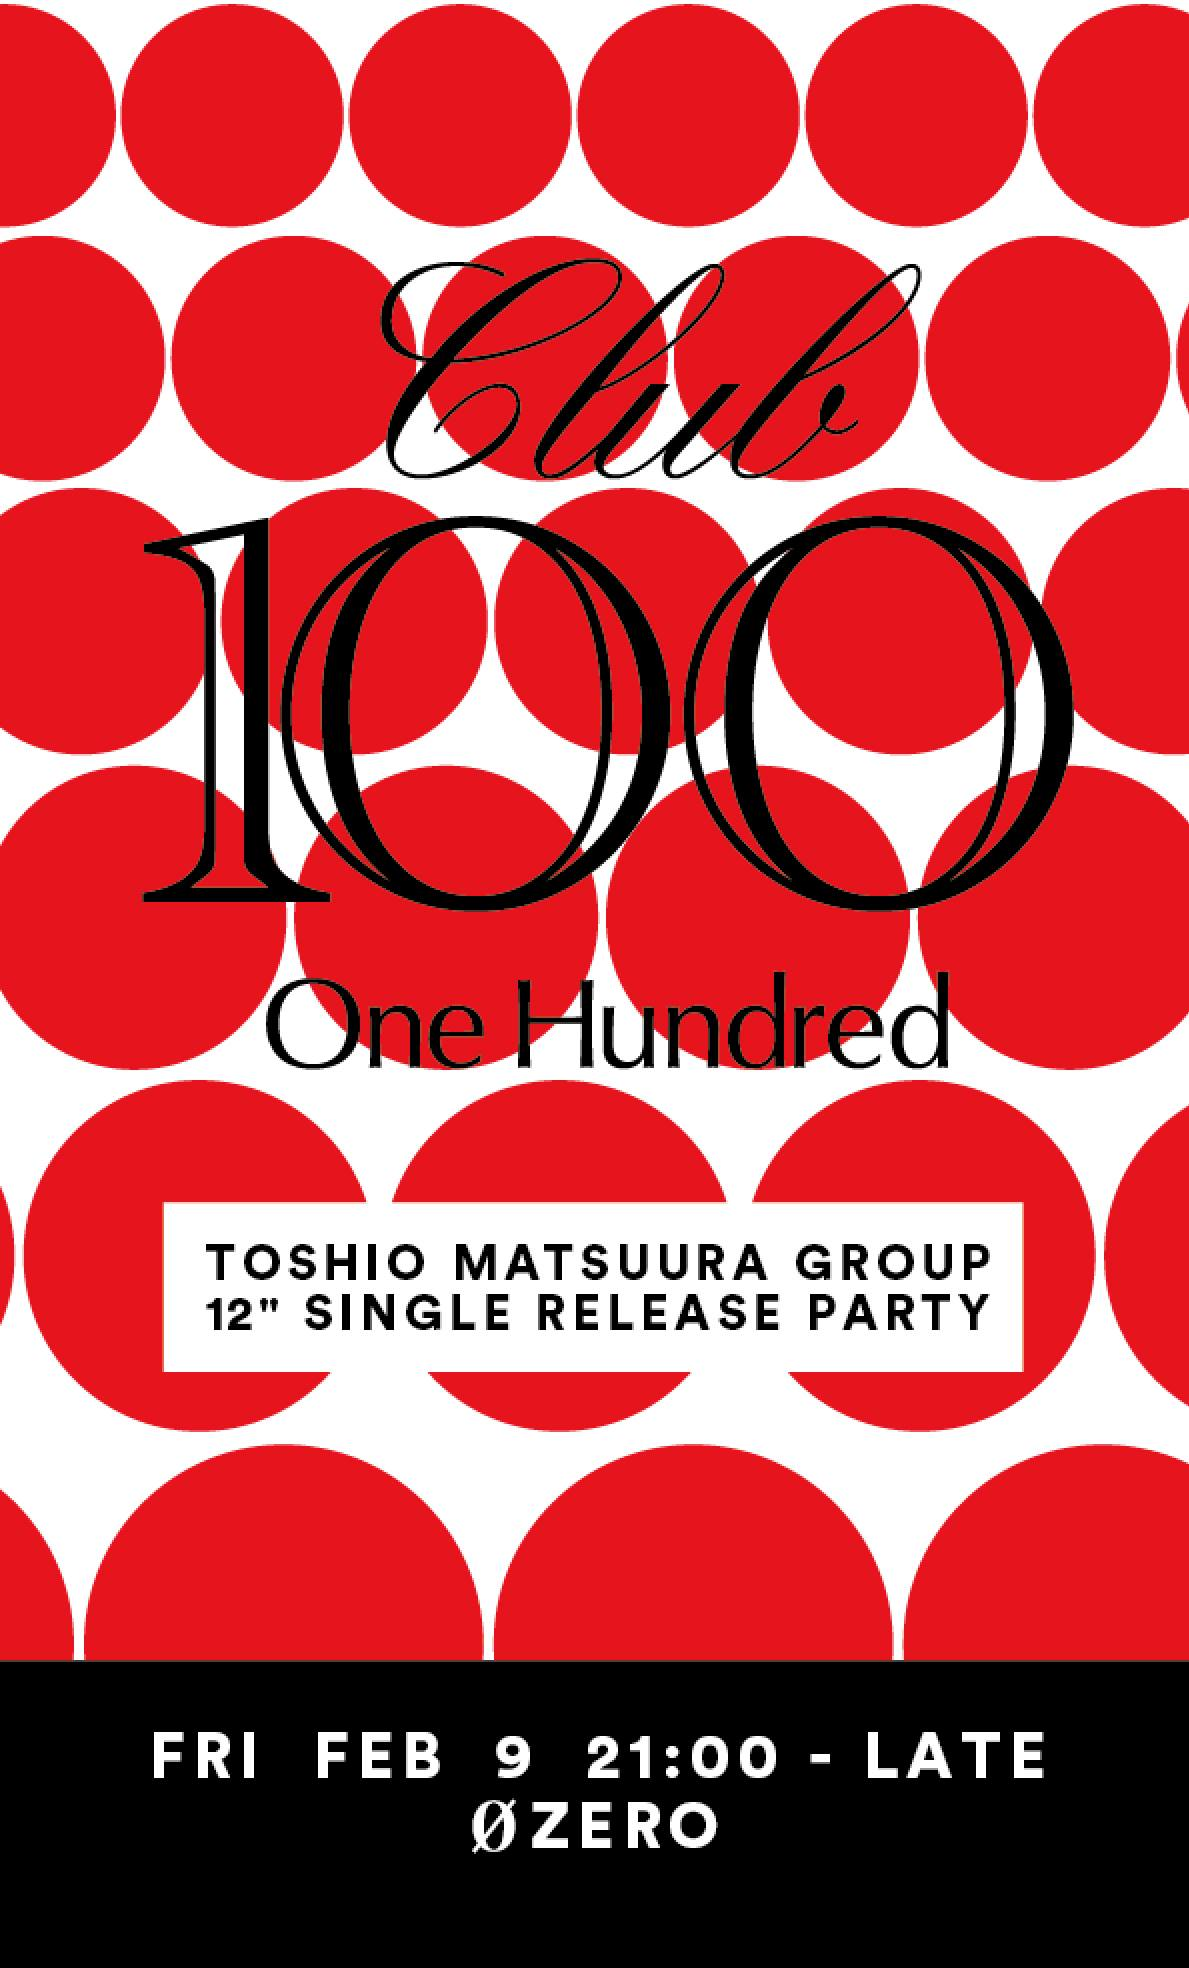 CLUB100 (One Hundred)  - Toshio Matsuura Group 12″ Single Release Party -